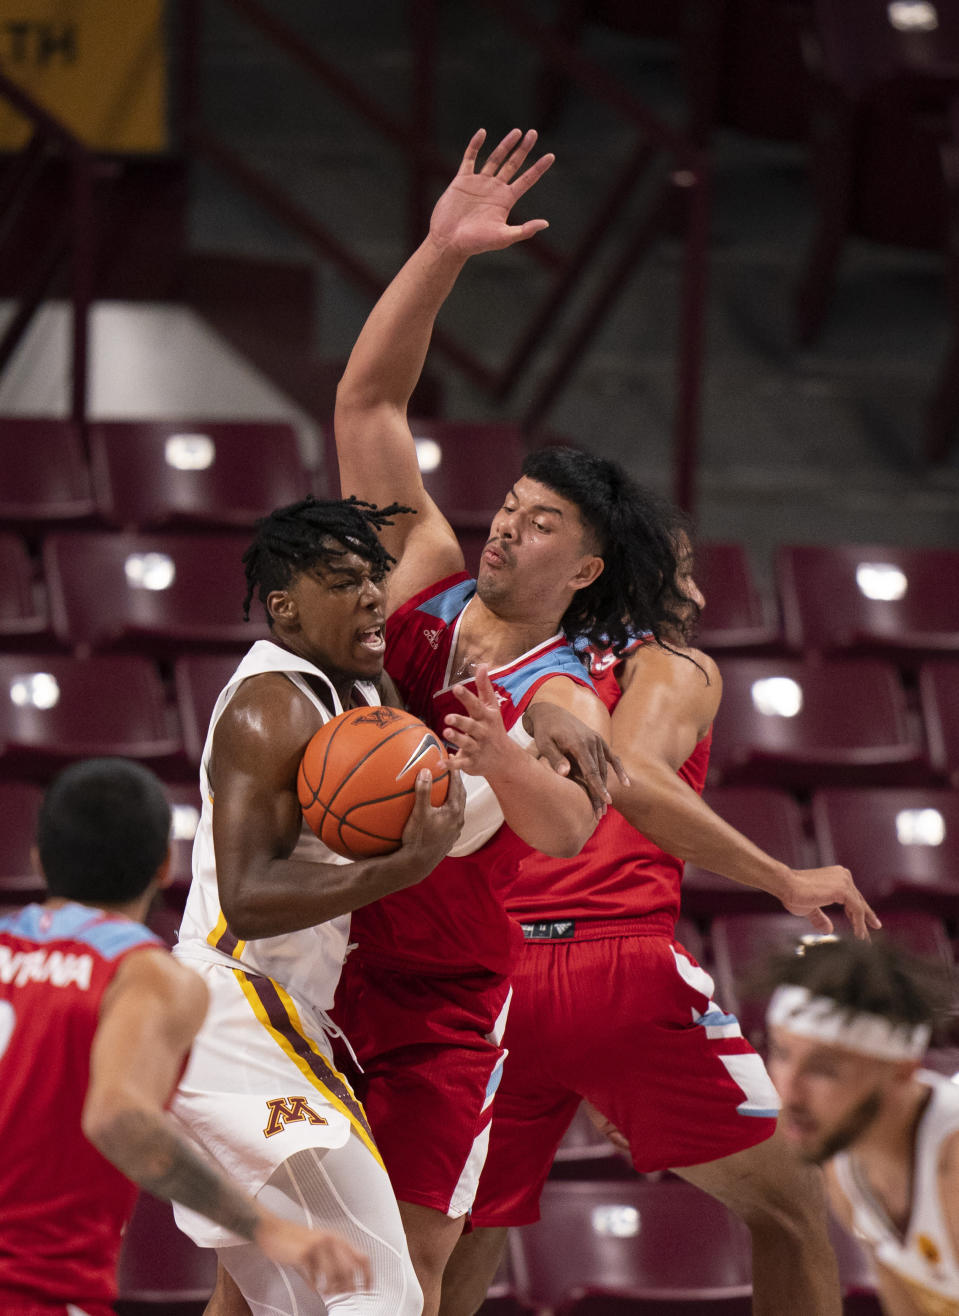 Minnesota guard Marcus Carr, center left, comes down with a defensive rebound in front of Loyola Marymount forward Keli Leaupepe, center right, in the first half of an NCAA college basketball game Monday, Nov. 30, 2020, in Minneapolis. (Jeff Wheeler/Star Tribune via AP)